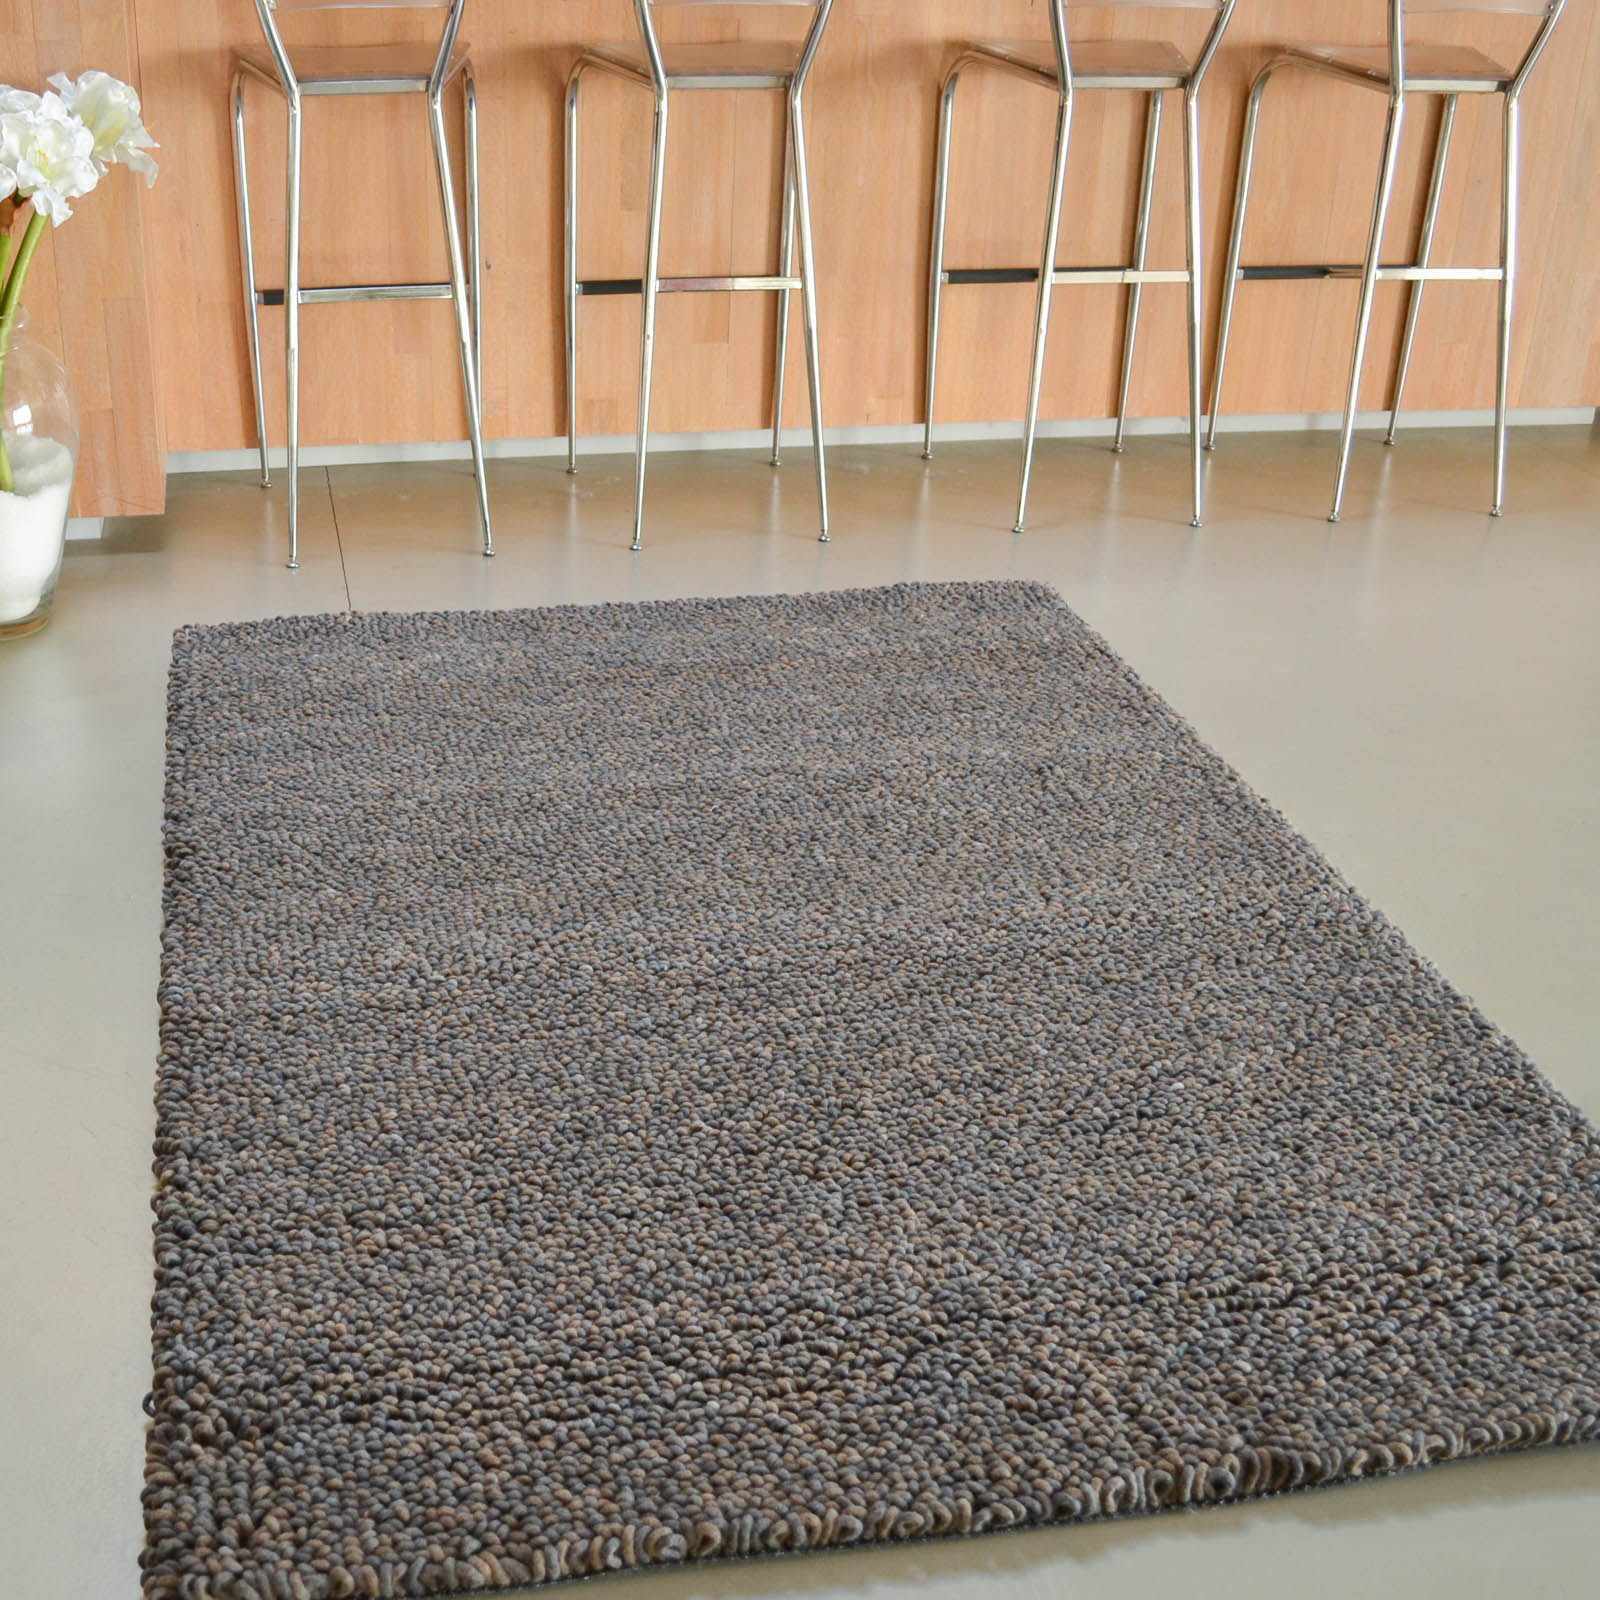 Metal Rugs 18905 Brown by Brink and Campman